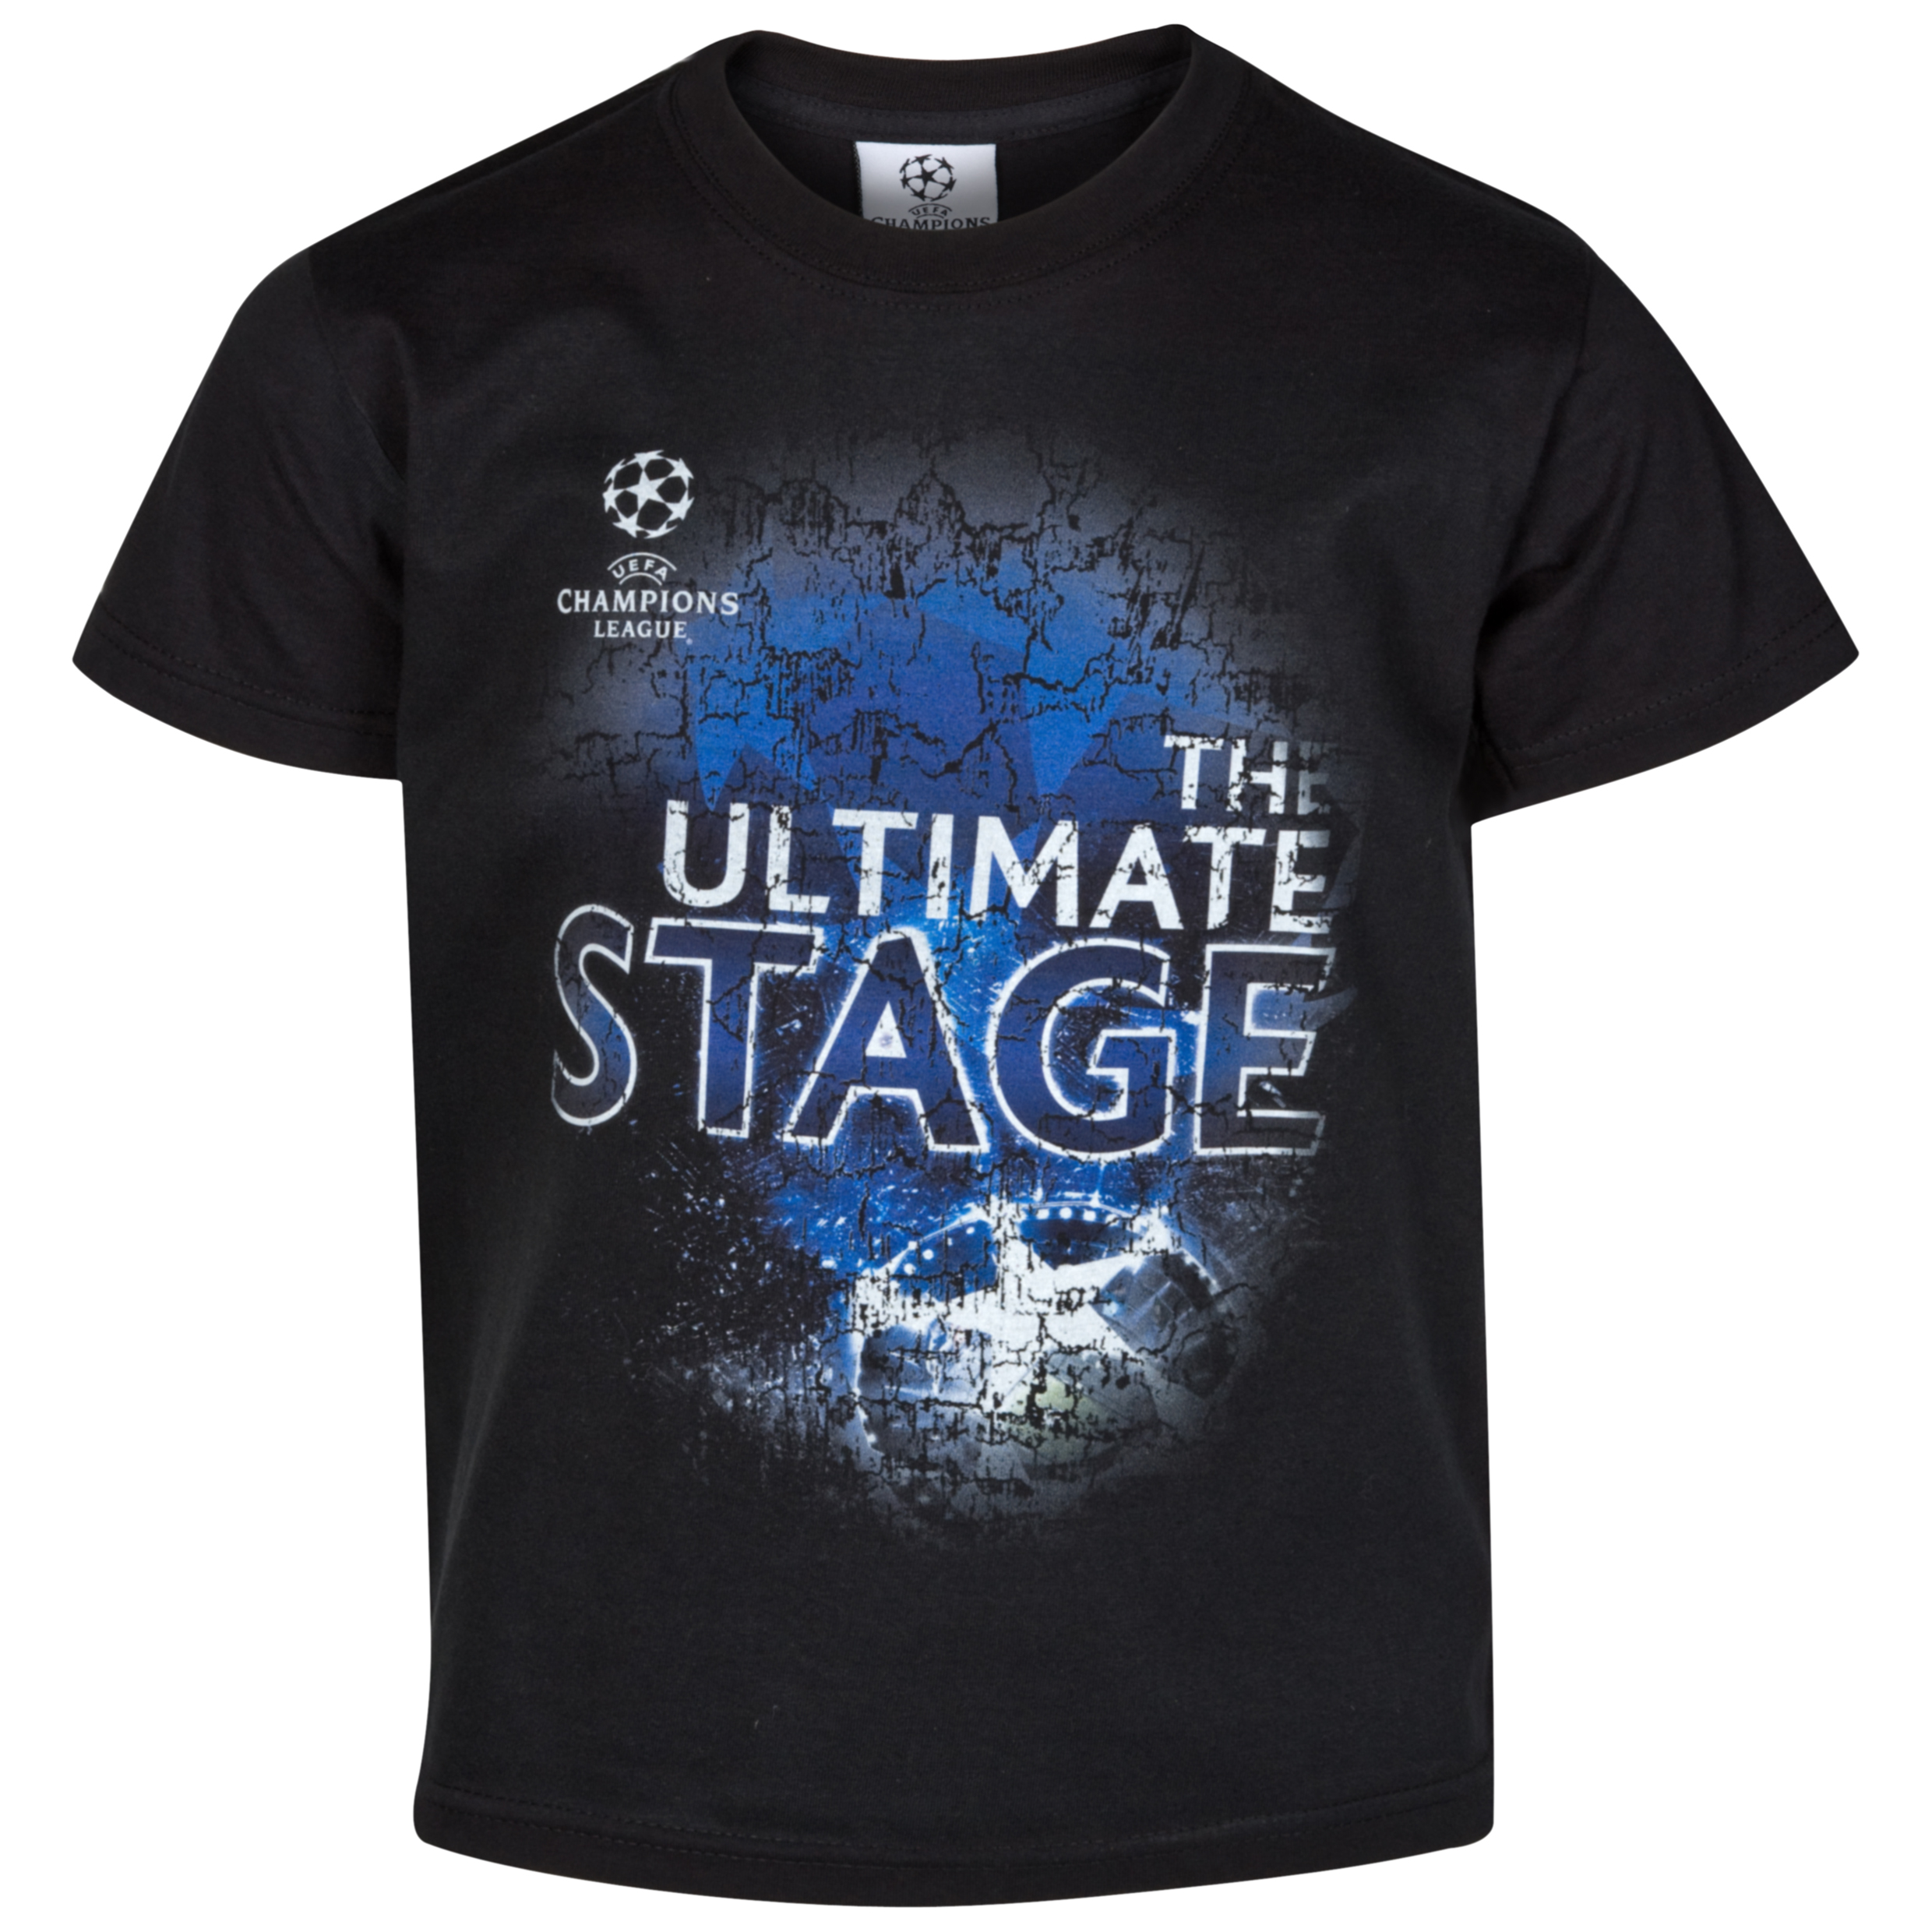 UEFA Champions League T-Shirt - Black - Kids